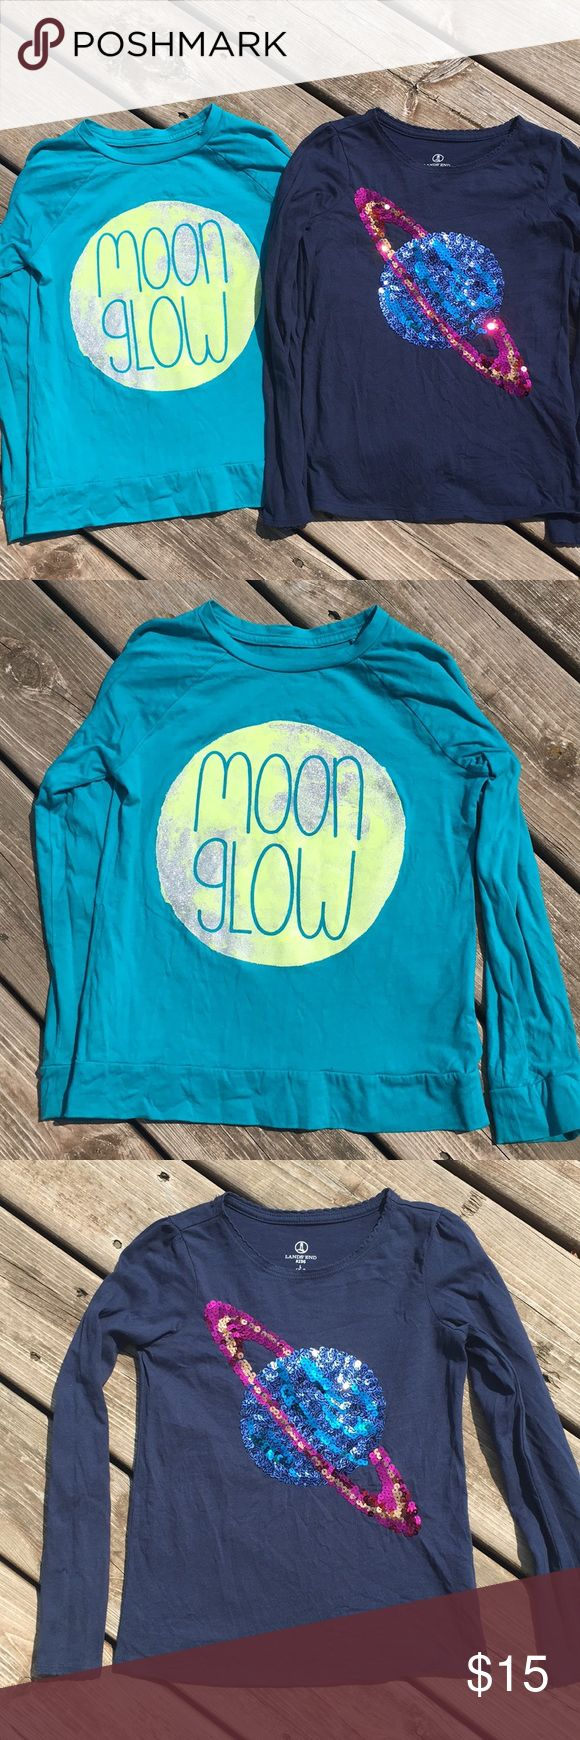 Lands End kids bundle of long sleeve tees Adorable Land End kids long sleeve tees bundle. Both are in excellent condition with no stains or holes.  The moon glow tee is teal and the moon graphic design glows in the dark.  The navy tee features a sequin Saturn pattern.  Both girls large (6x-7) and 100% cotton. Lands' End Shirts & Tops Tees - Long Sleeve